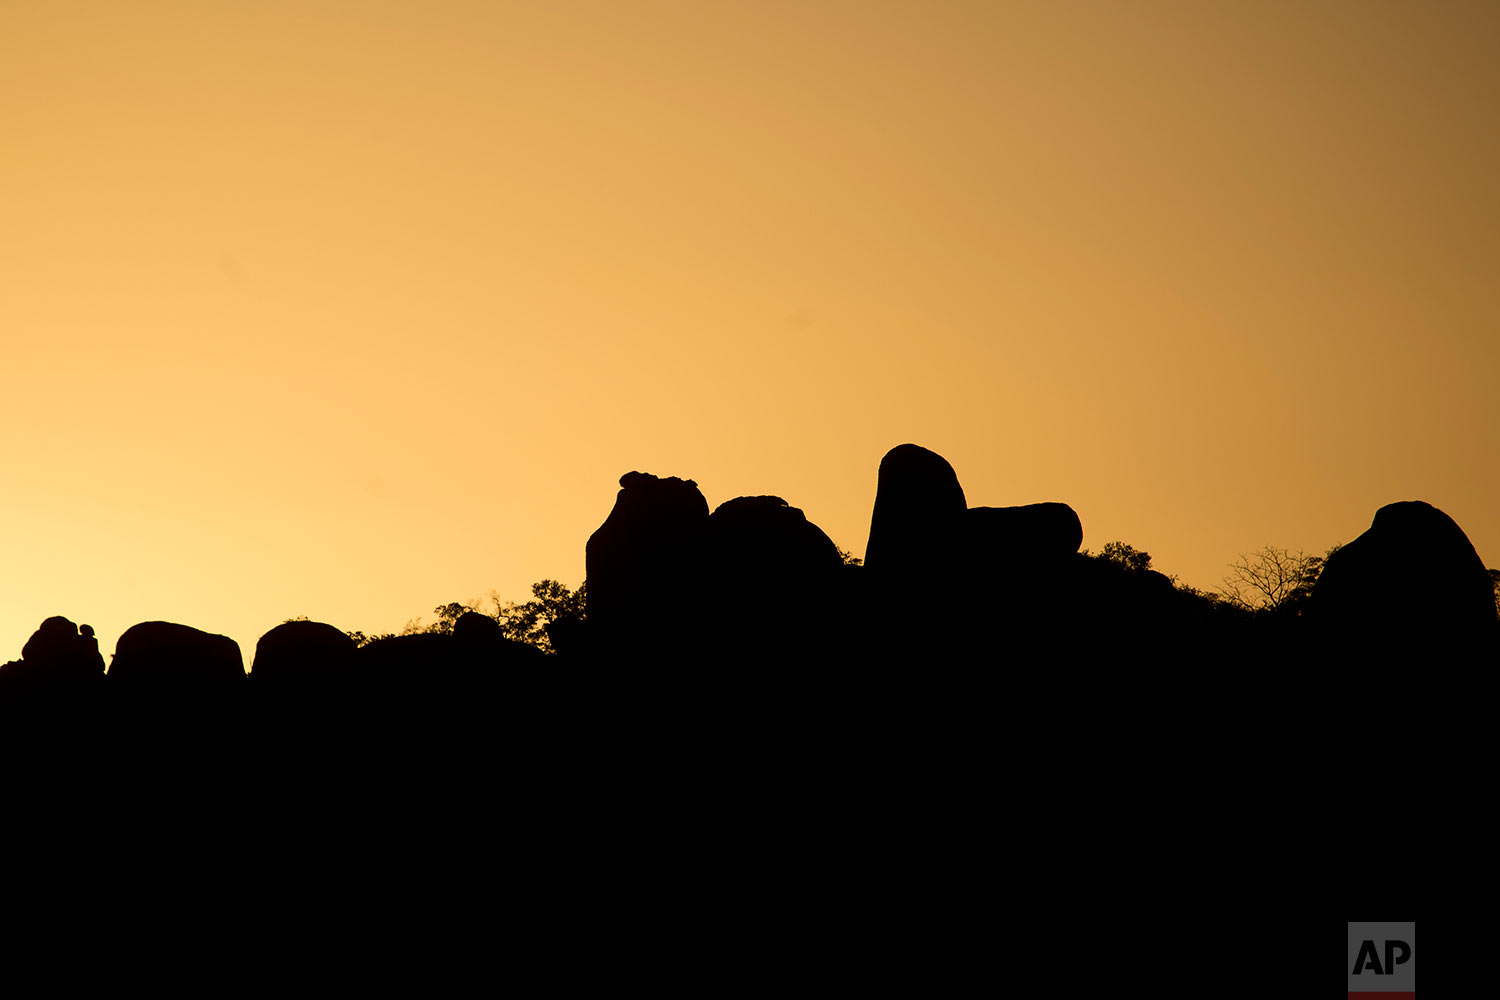 The sun sets over the Matobo hills where, over 30 years ago, Zimbabwe army soldiers killed in what many called the Matabeleland Massacres, or Gukurahundi. (AP Photo/Jerome Delay)